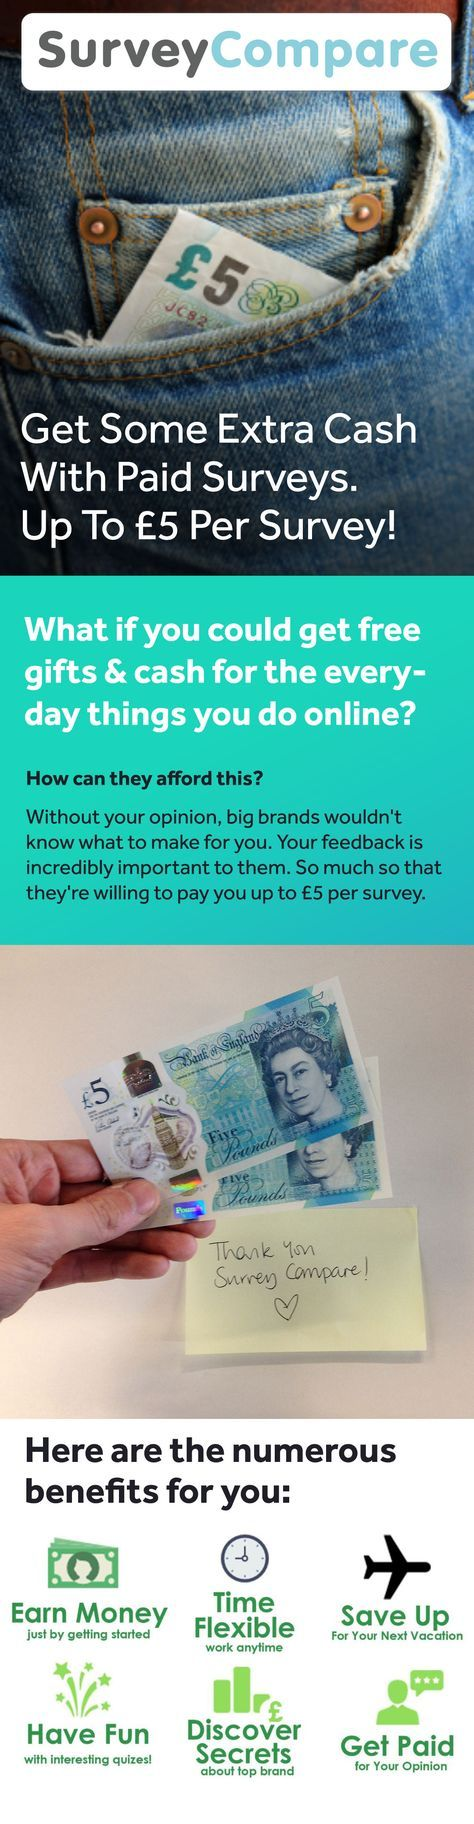 The amount of money you can earn depends on how many companies you choose to sign up for and how long you want to spend completing surveys. For instance, the average survey pays £5; taking 5 surveys a day, 5 days a week gives £500/month. Find out more by clicking on the image.